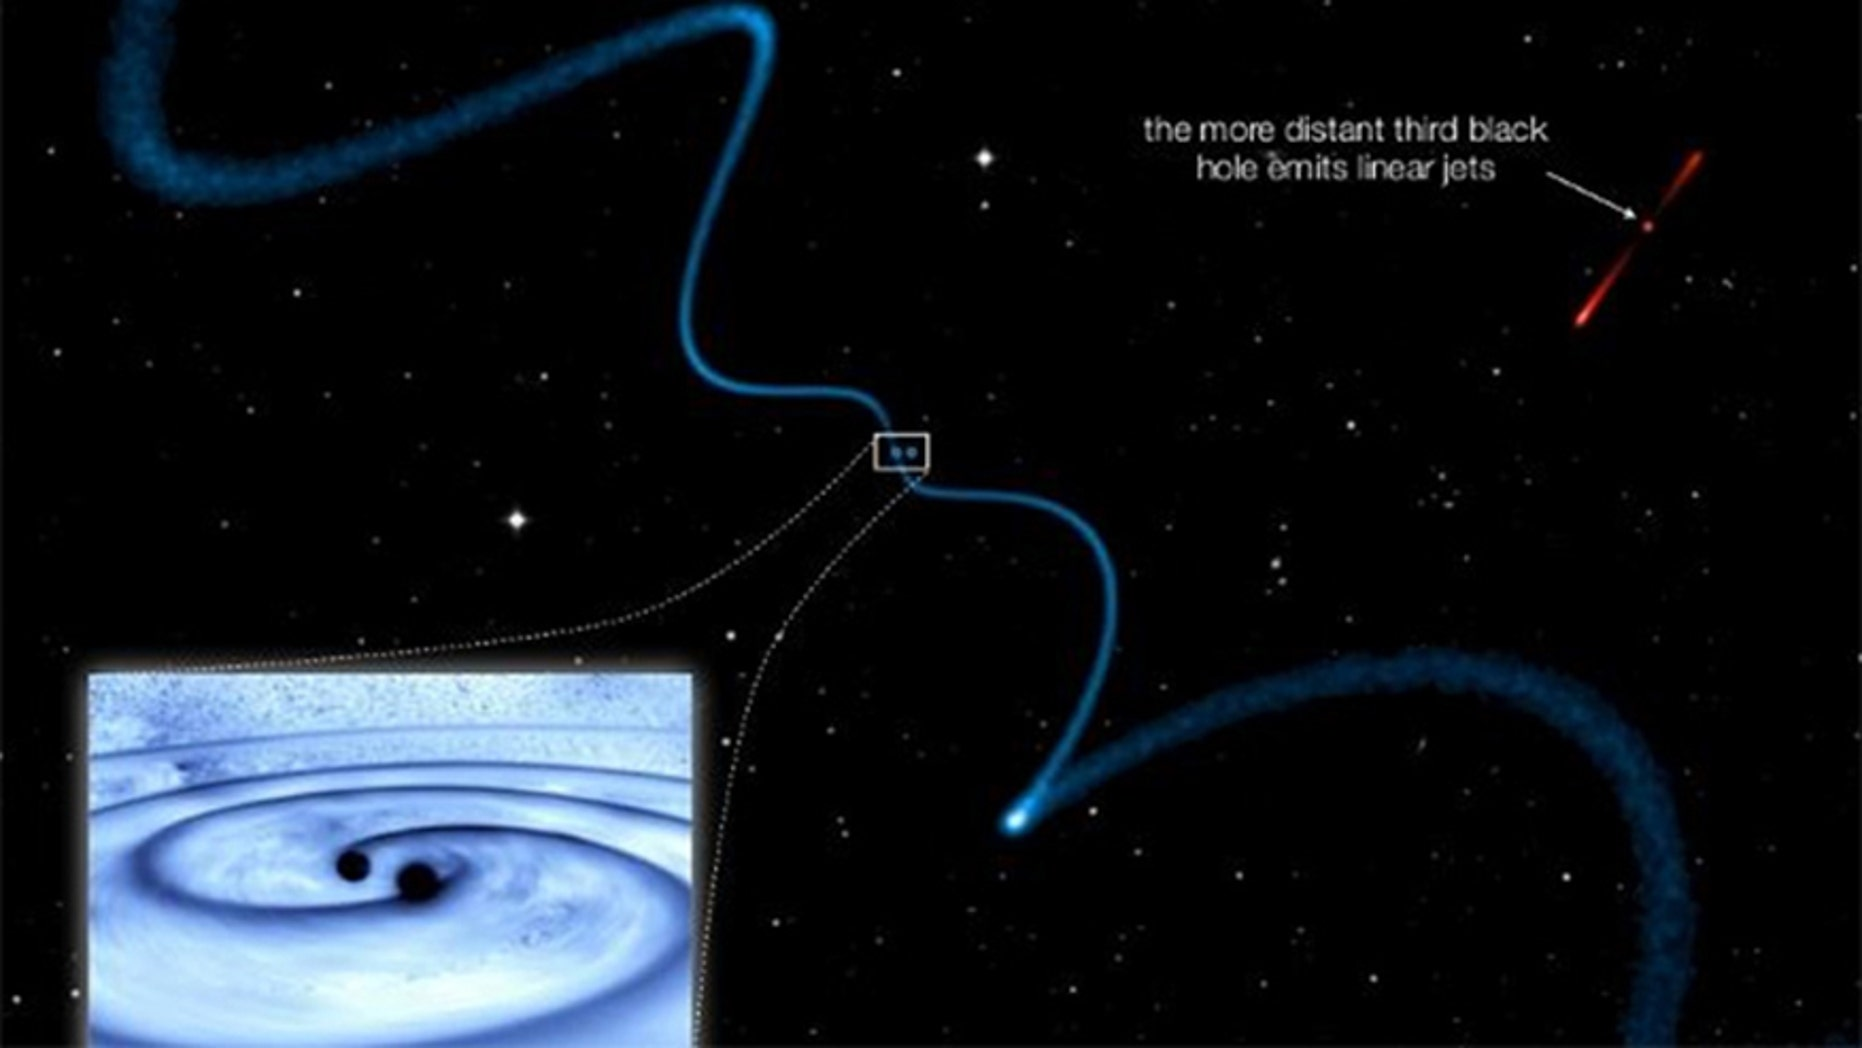 Helical jets from one supermassive black hole caused by a very closely orbiting companion (see blue dots). The third black hole is part of the system, but farther away and therefore emits relatively straight jets.